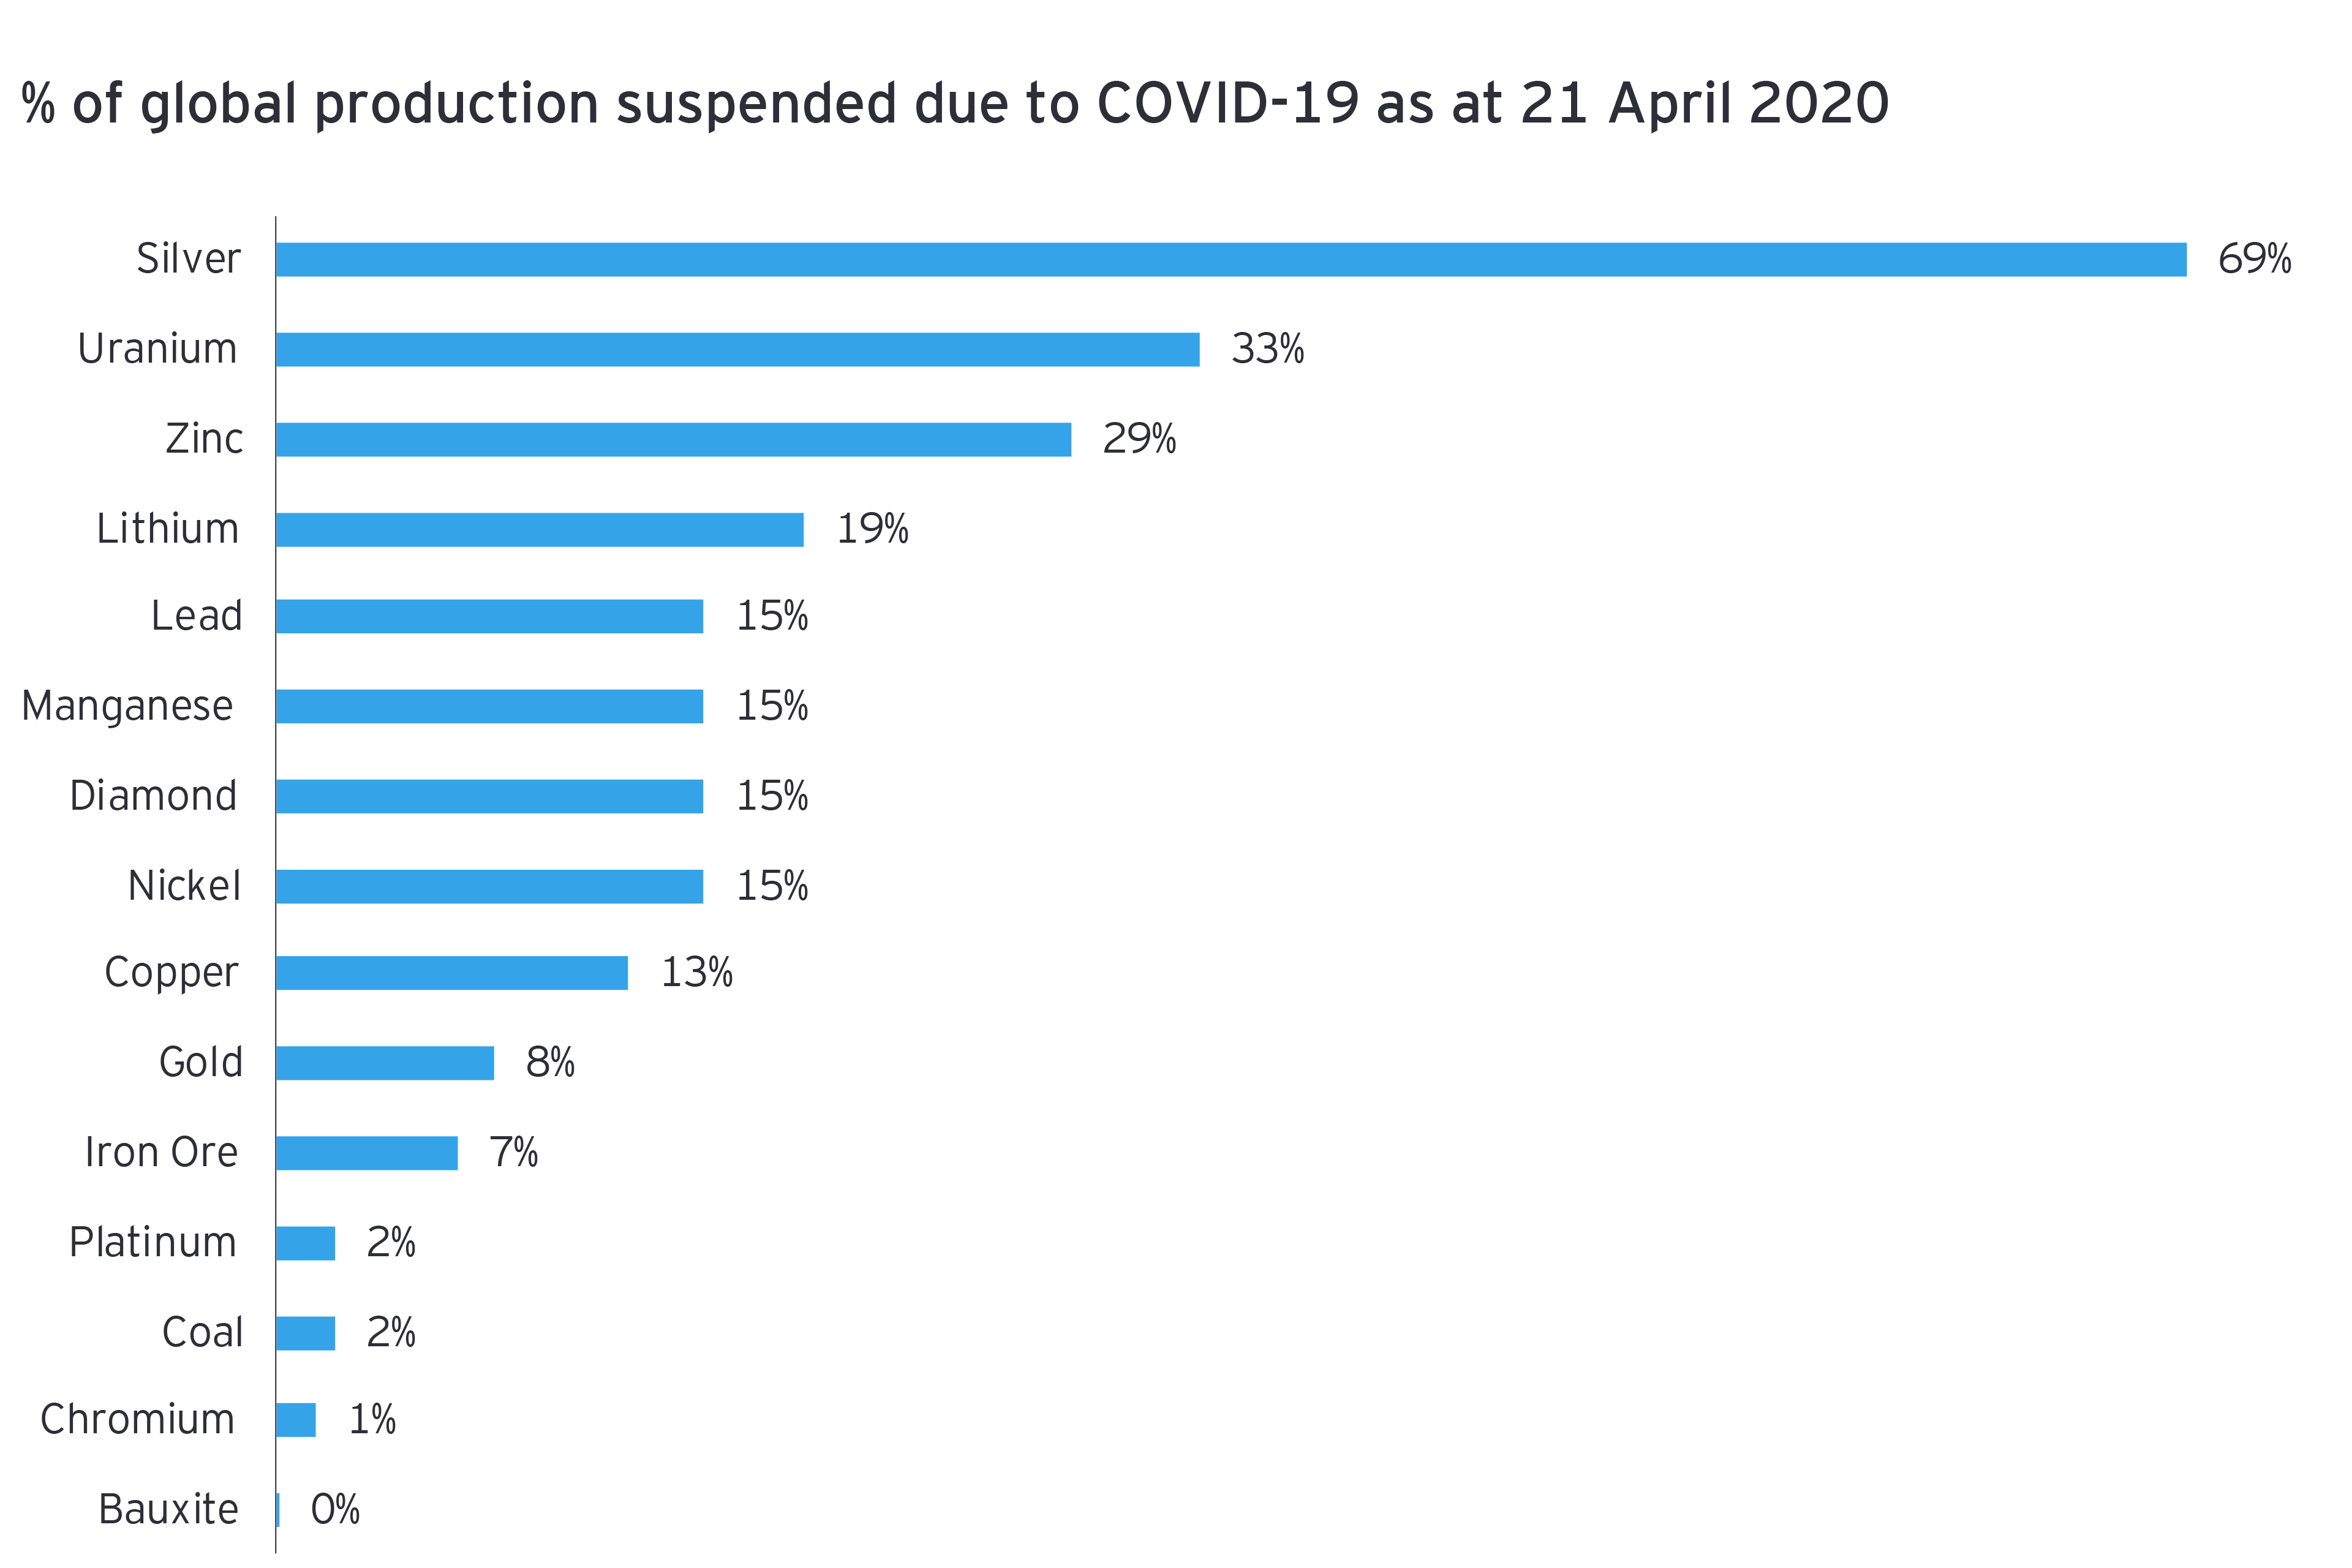 % of Global production suspended due to covid-19 as at 21 april 2020